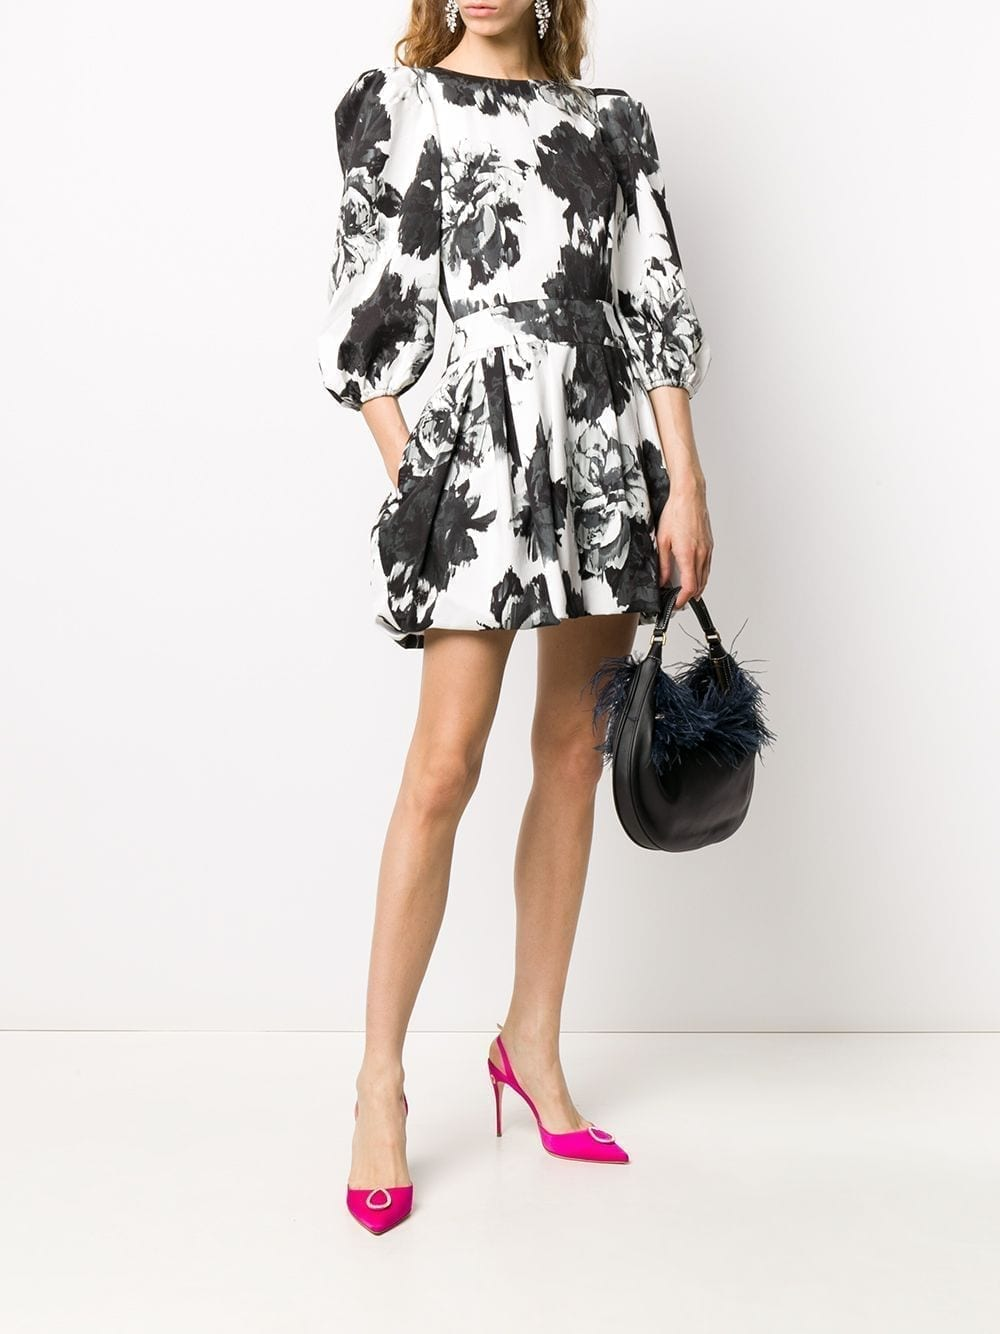 ALEXANDRE VAUTHIER Flared Floral-print Midi Dress